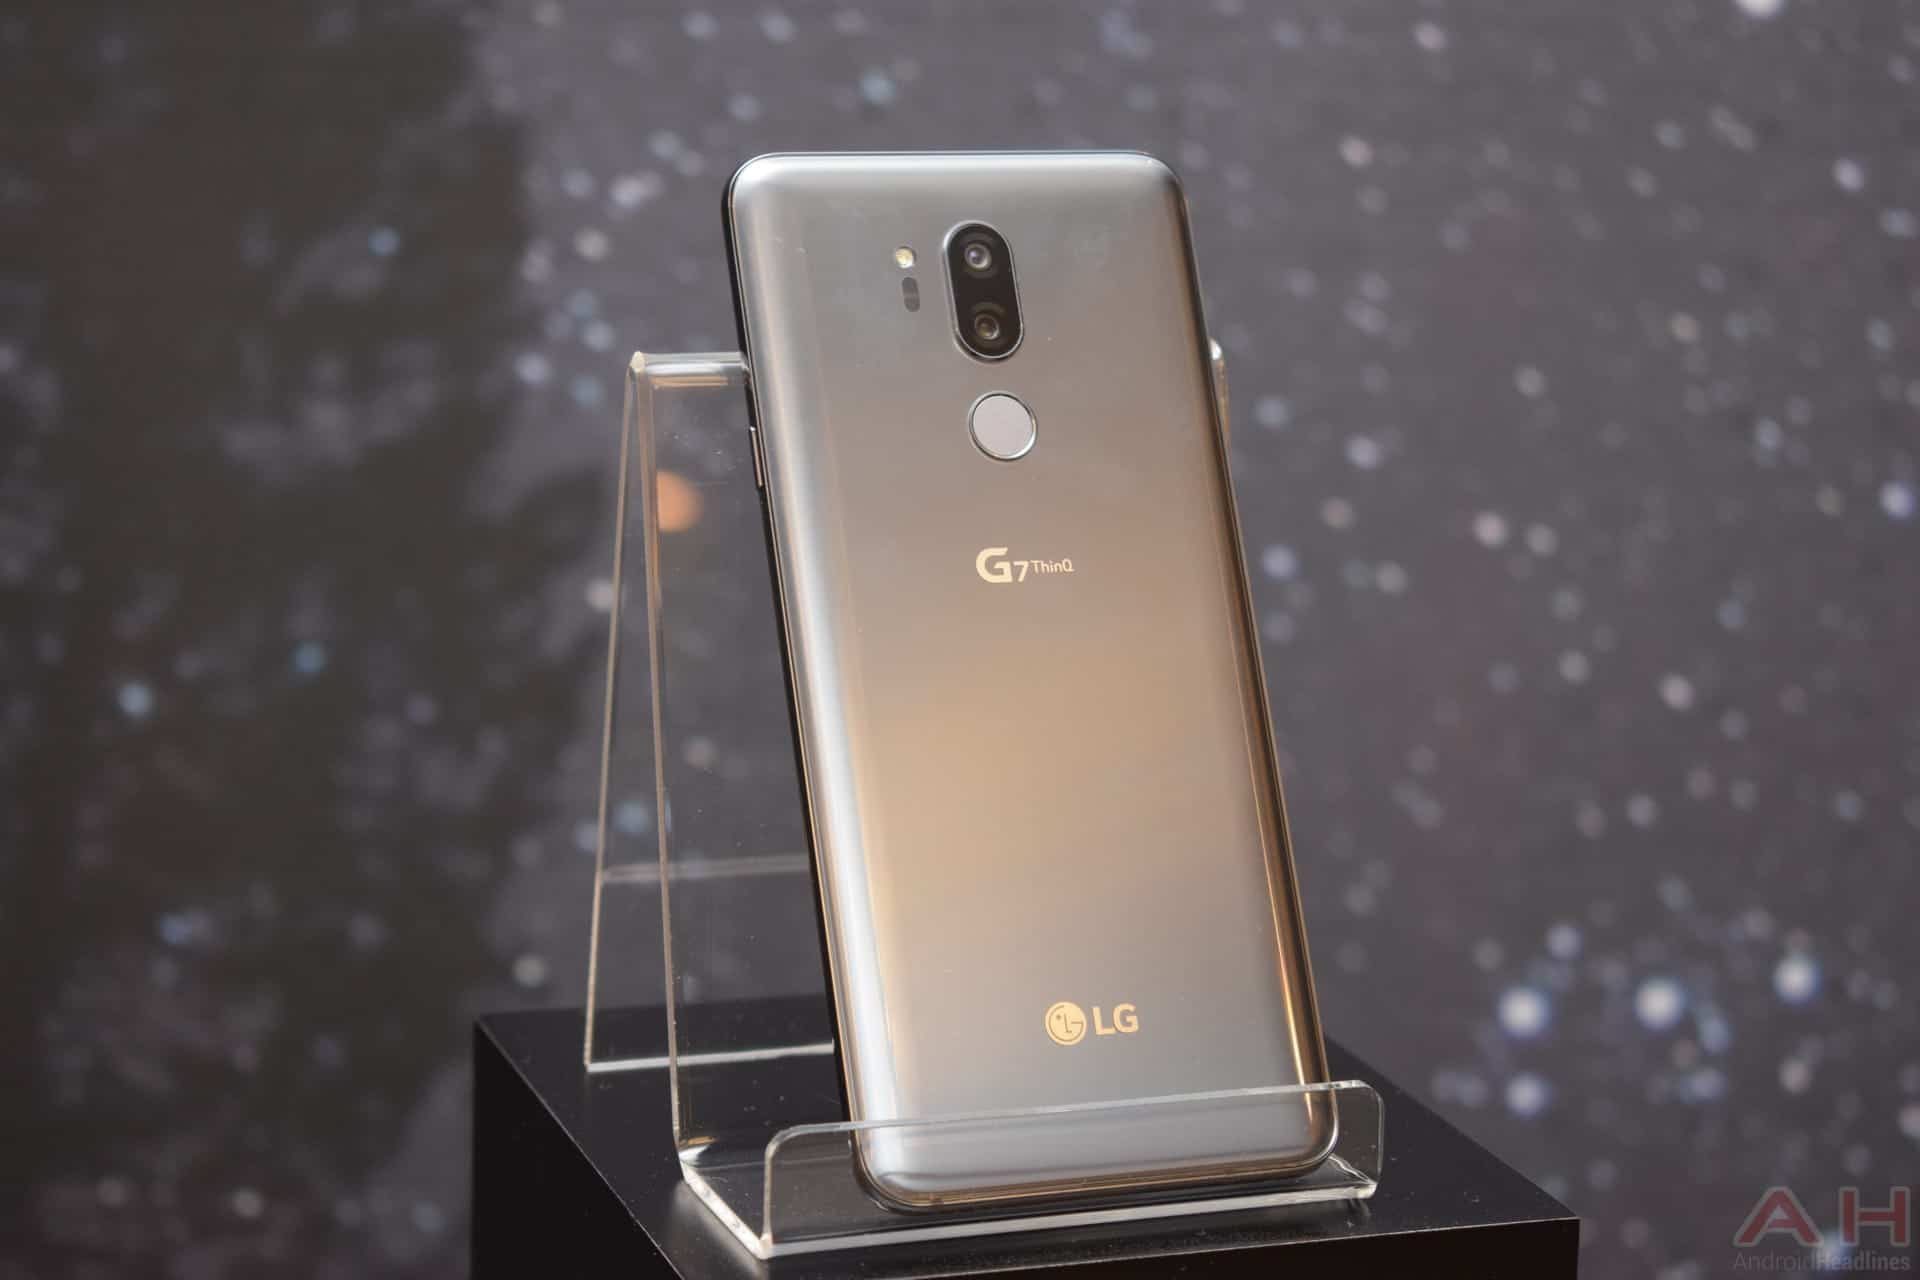 Pre Order The Lg G7 Thinq In Canada And Get A Free 4k Uhd Tv Tech2